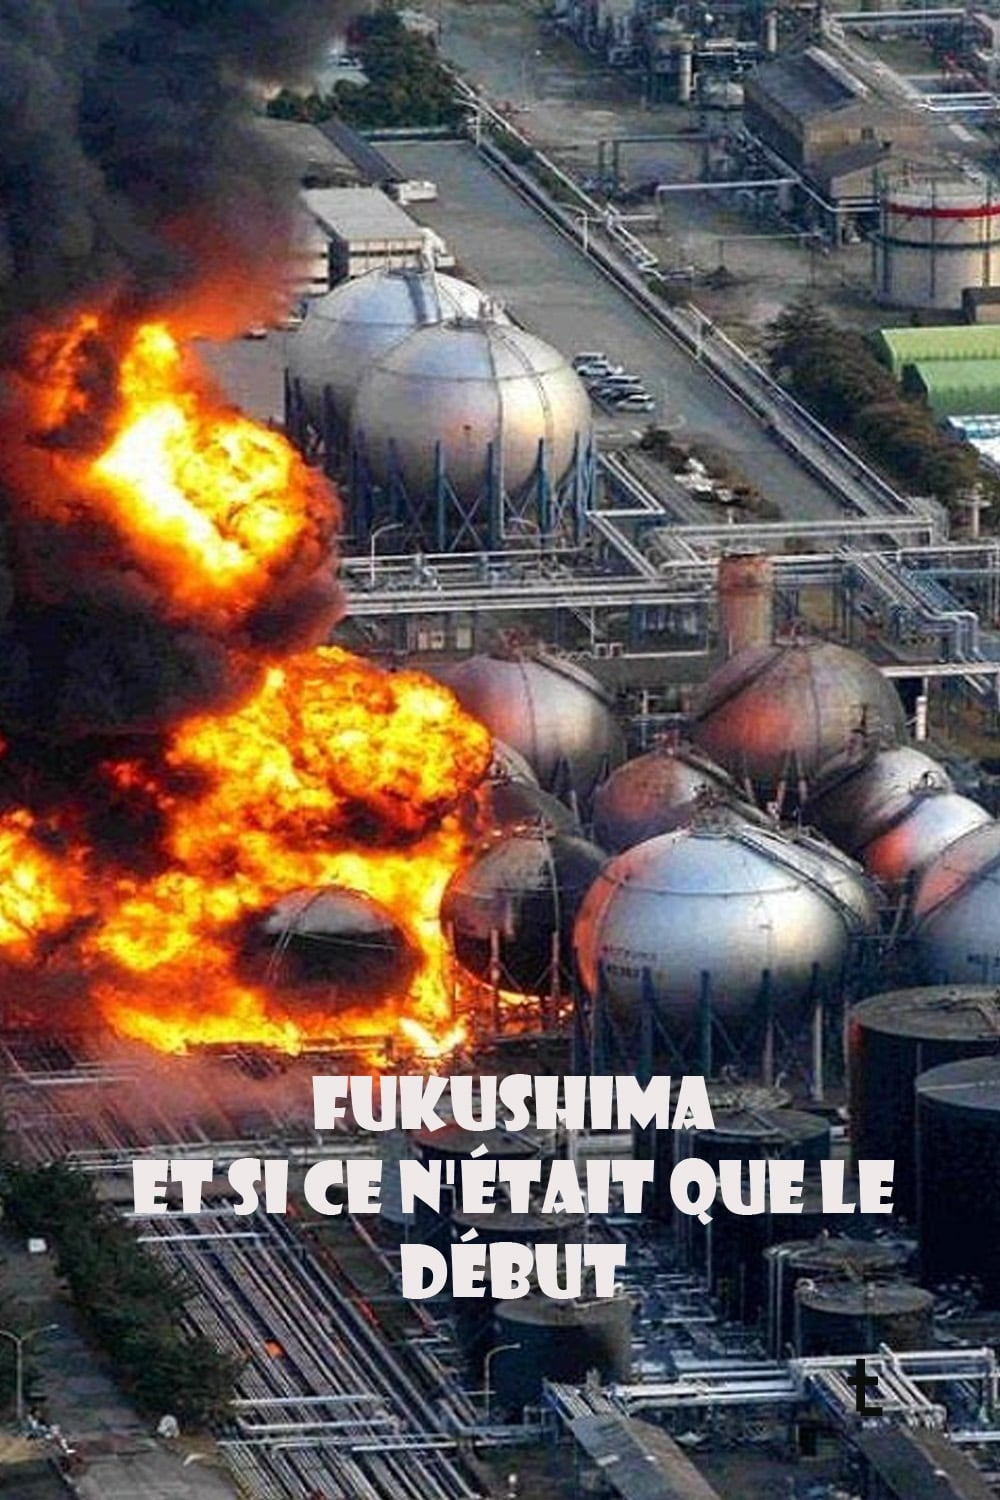 Fukushima: Is Nuclear Power Safe?